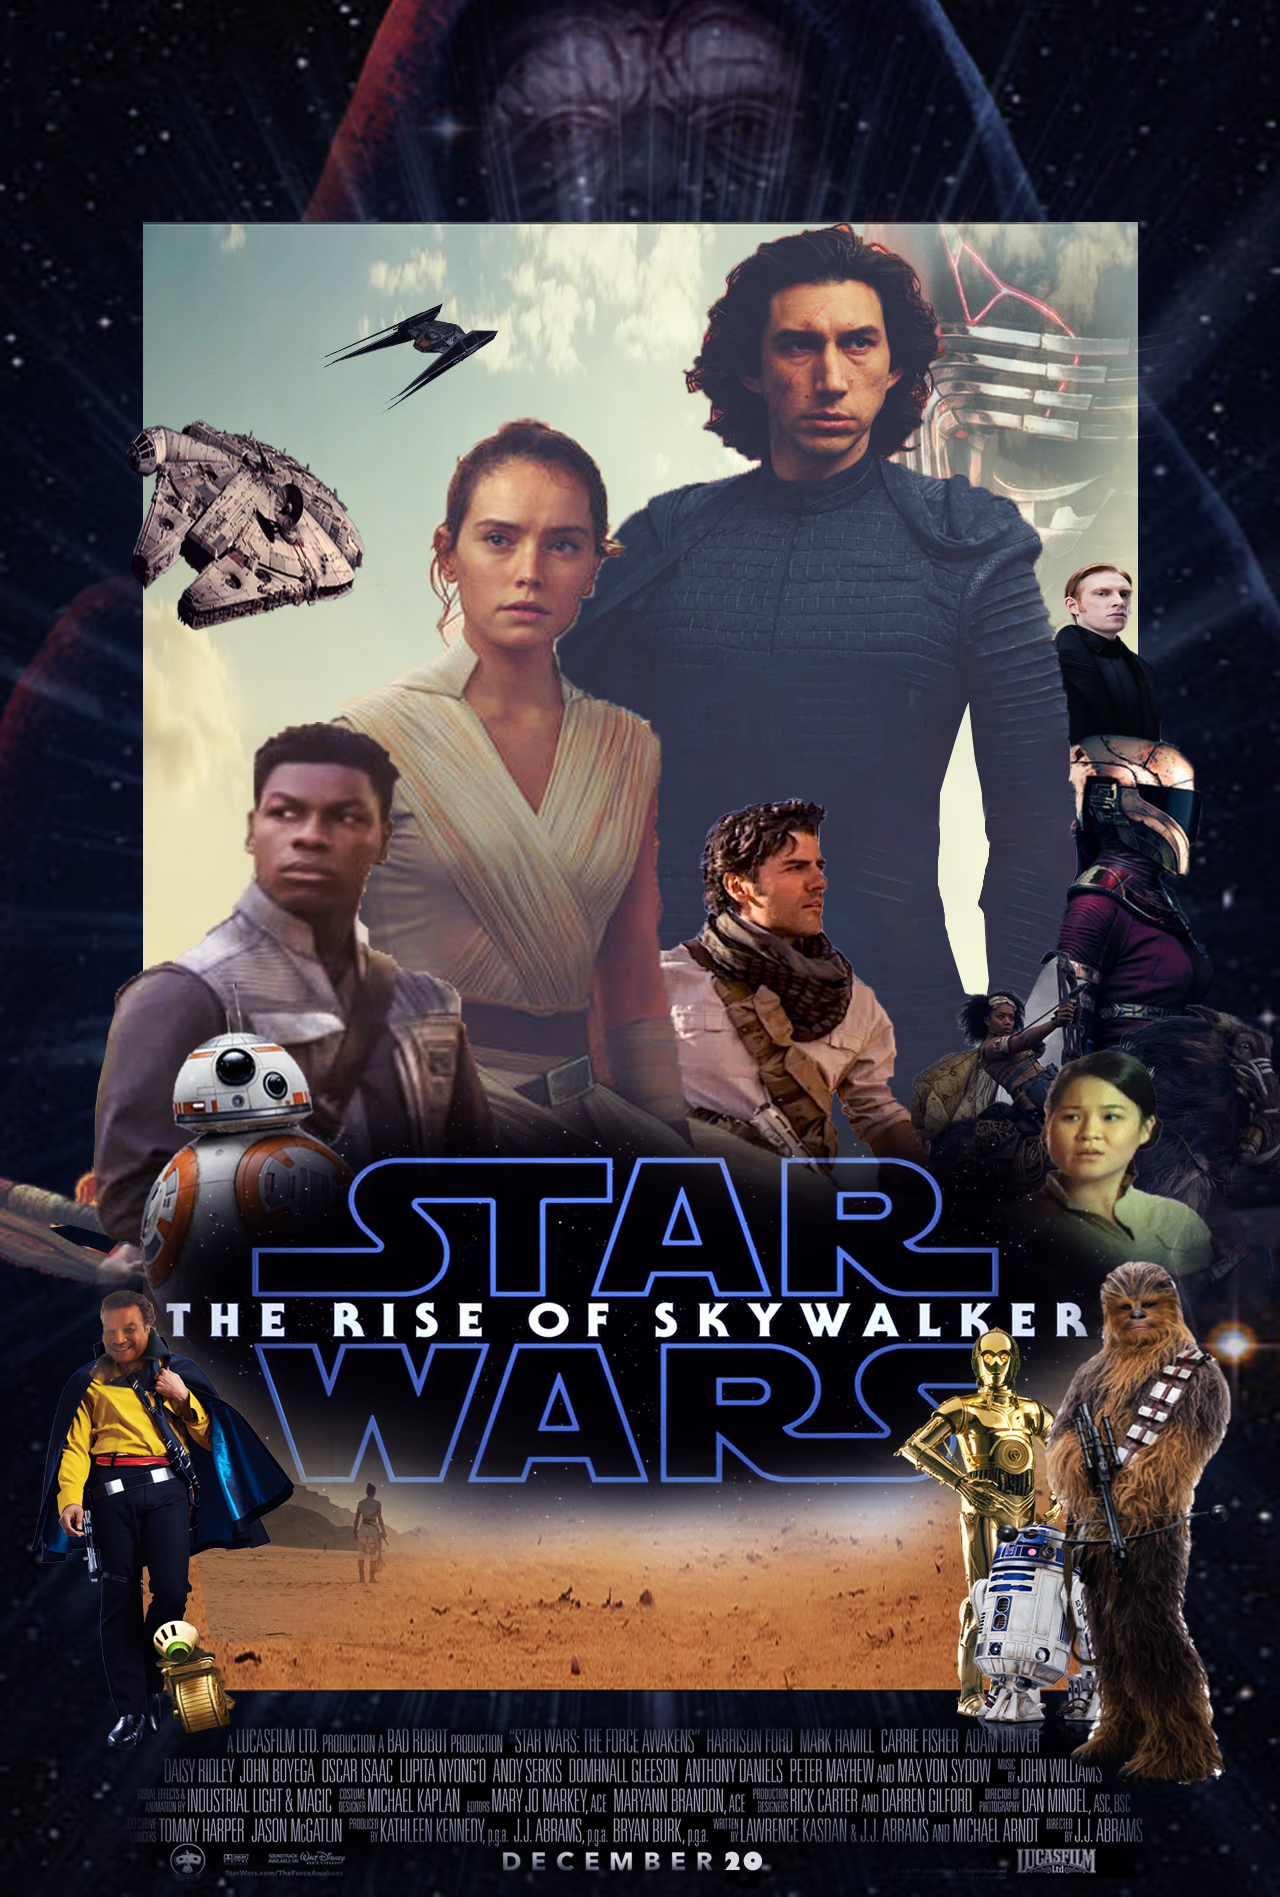 Star Wars The Rise Of Skywalker Poster By Thekingblader995 On Deviantart